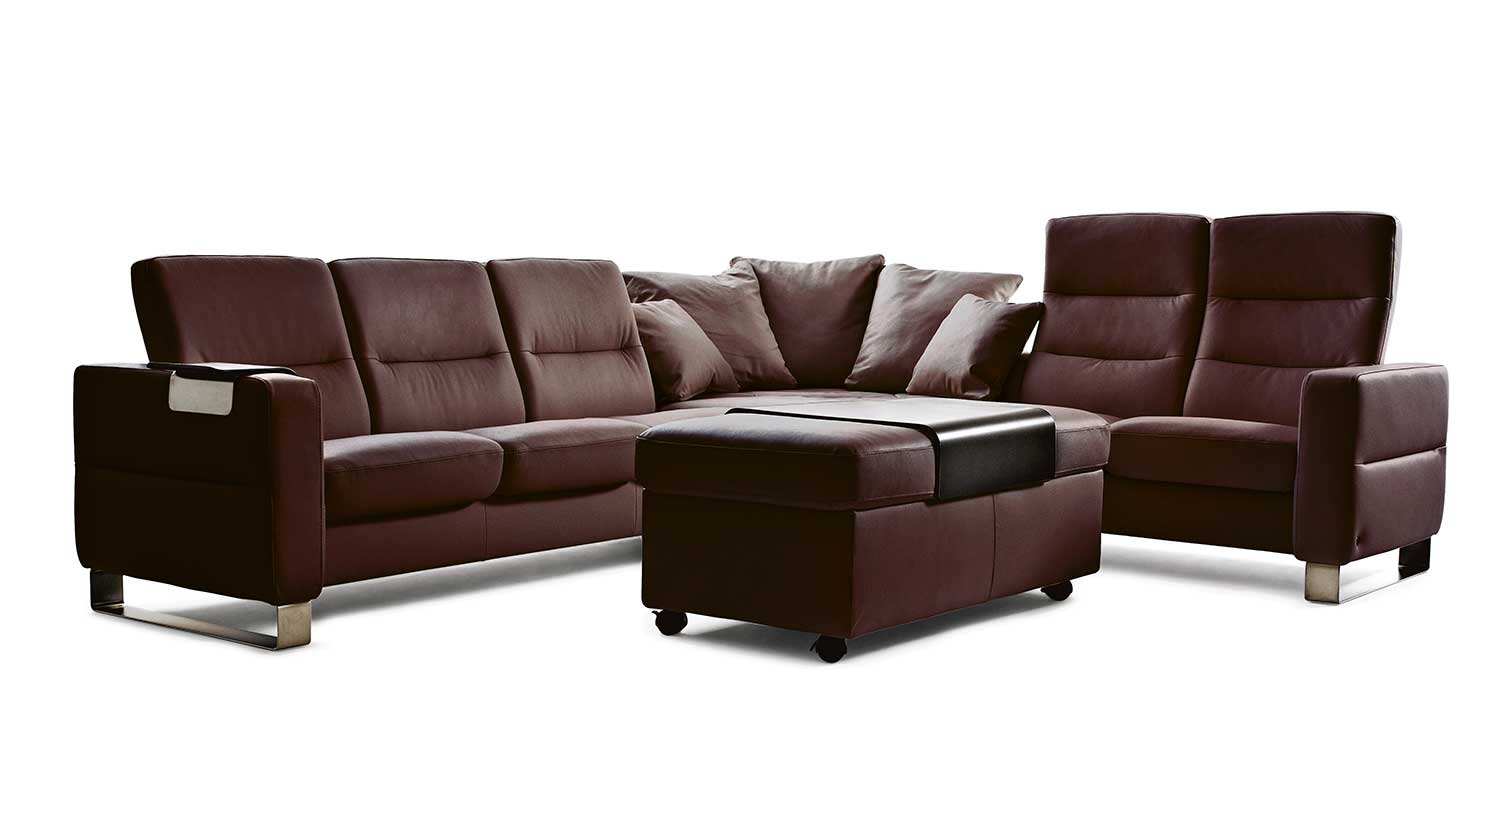 Stressless Sofa And Chairs 12 Photo Of Ekornes Sectional Sofa